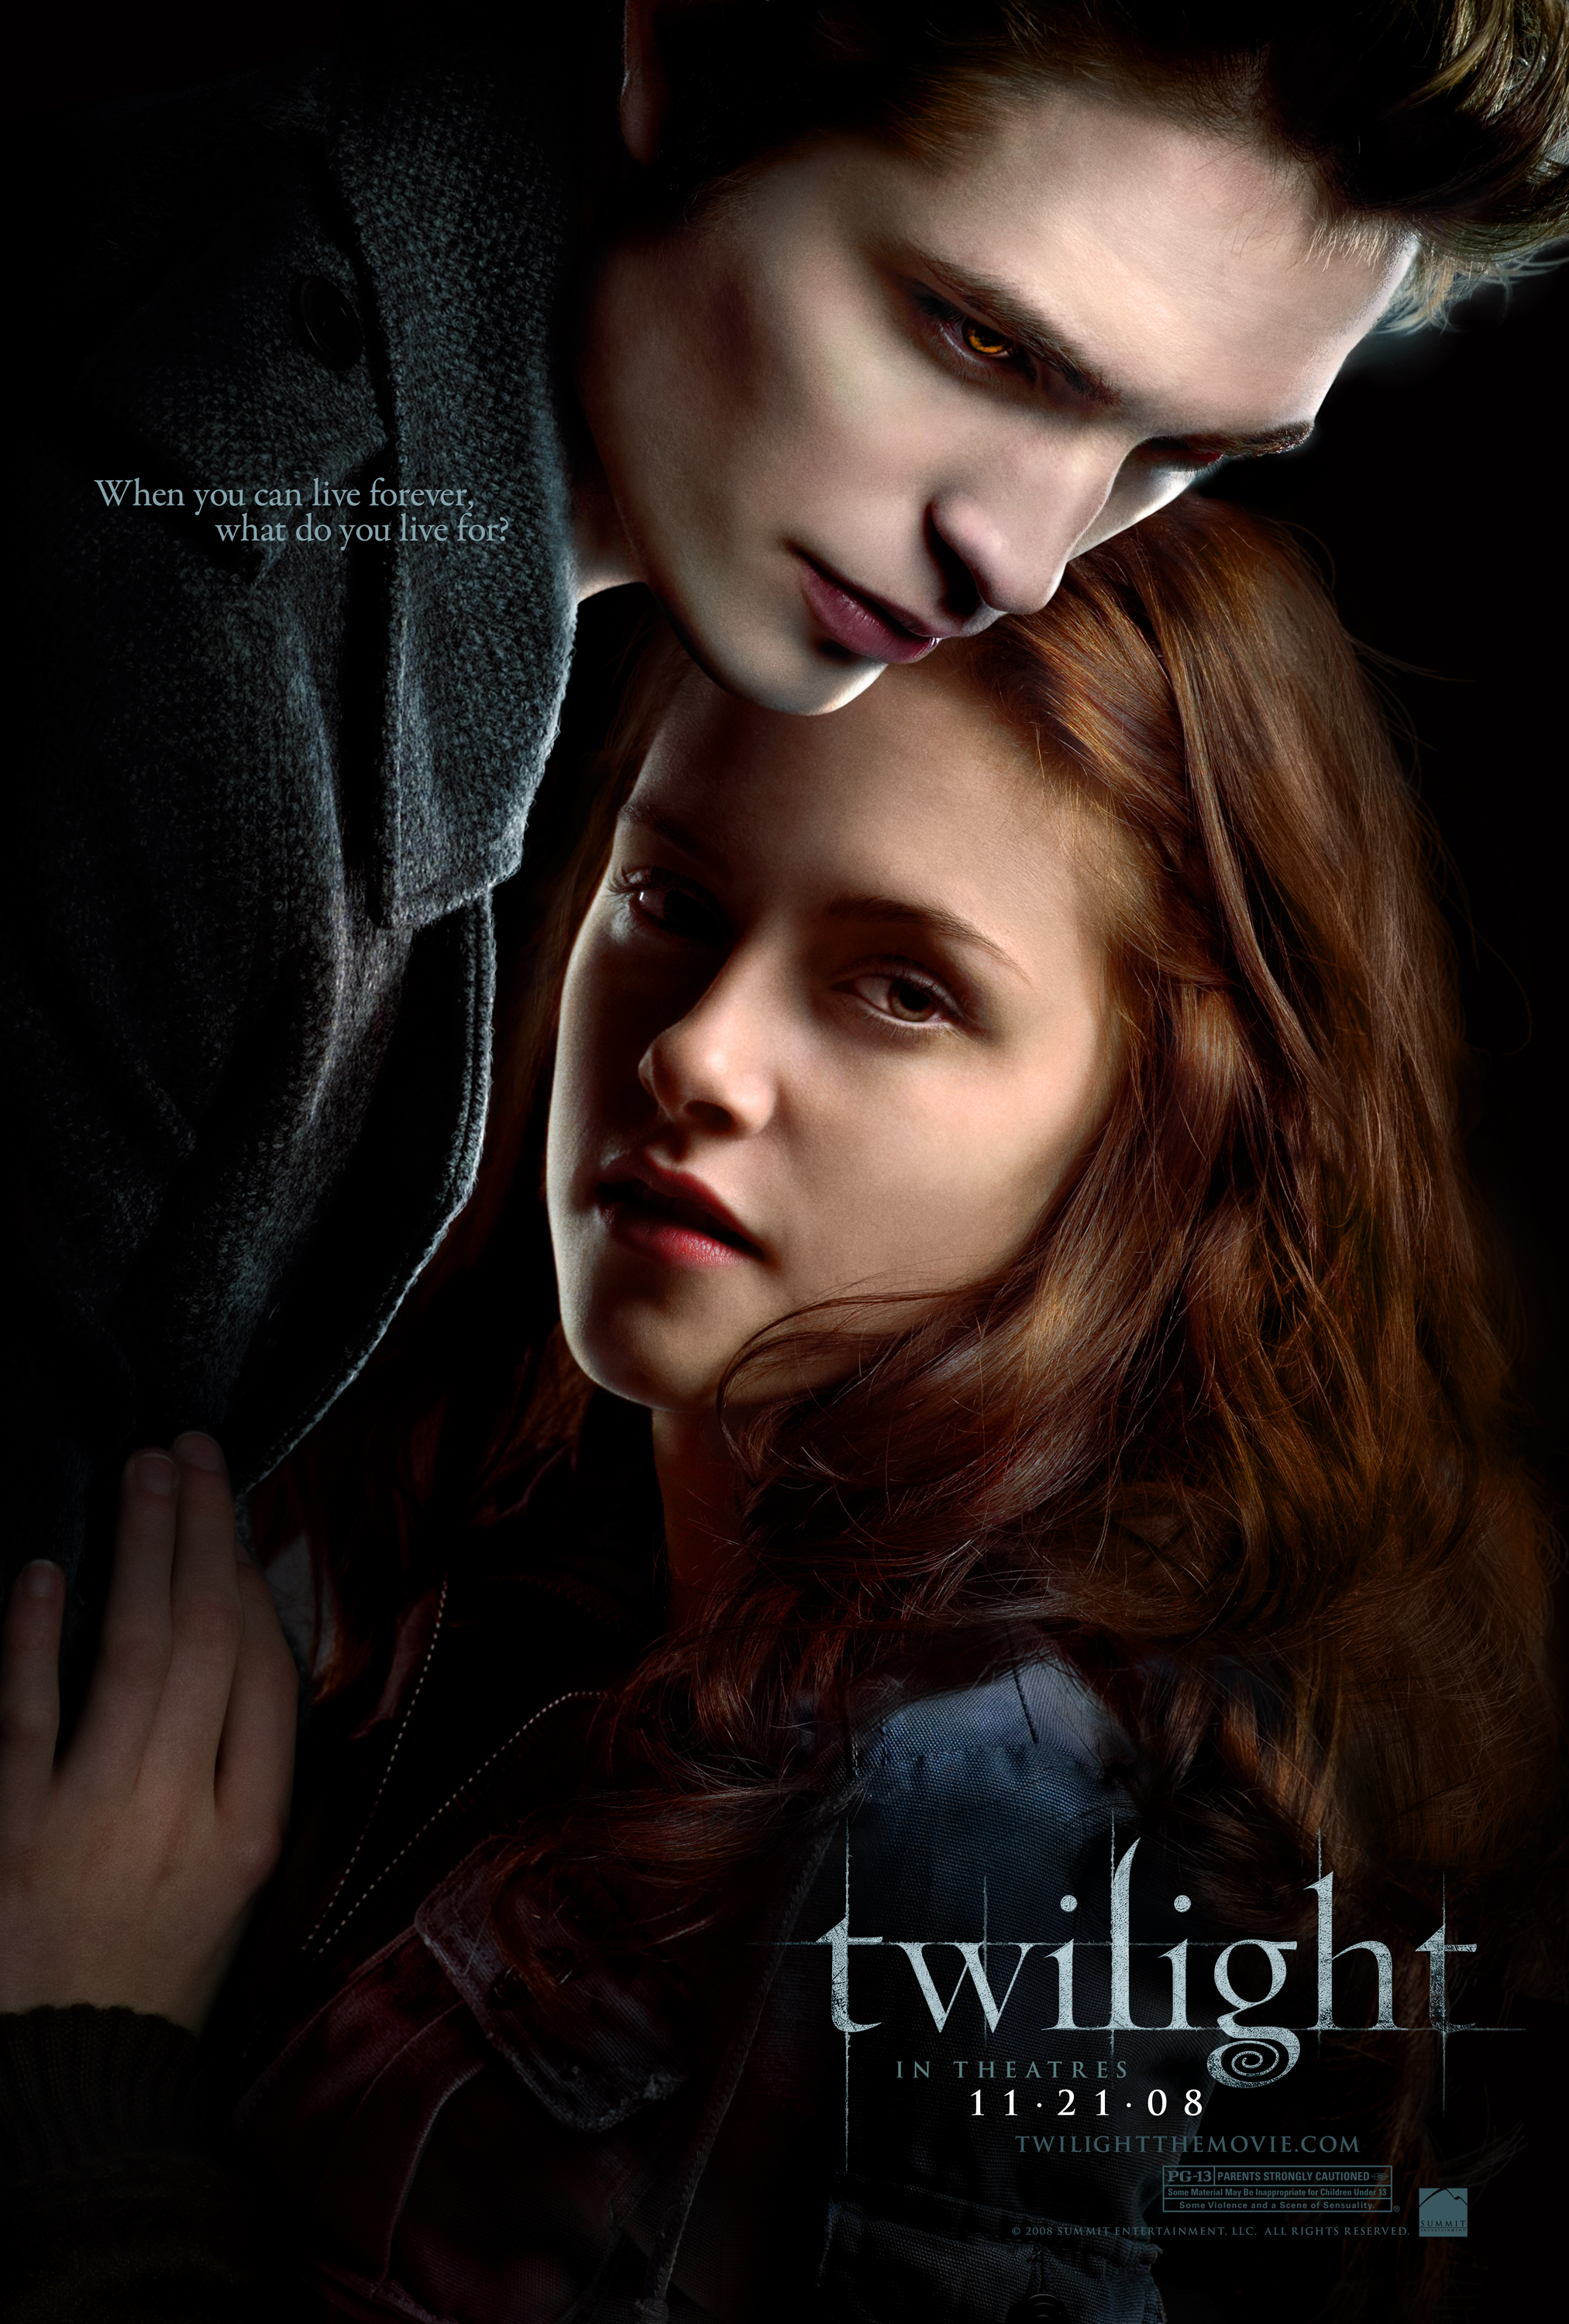 TWILIGHTOne-Sheet10.24.jpg